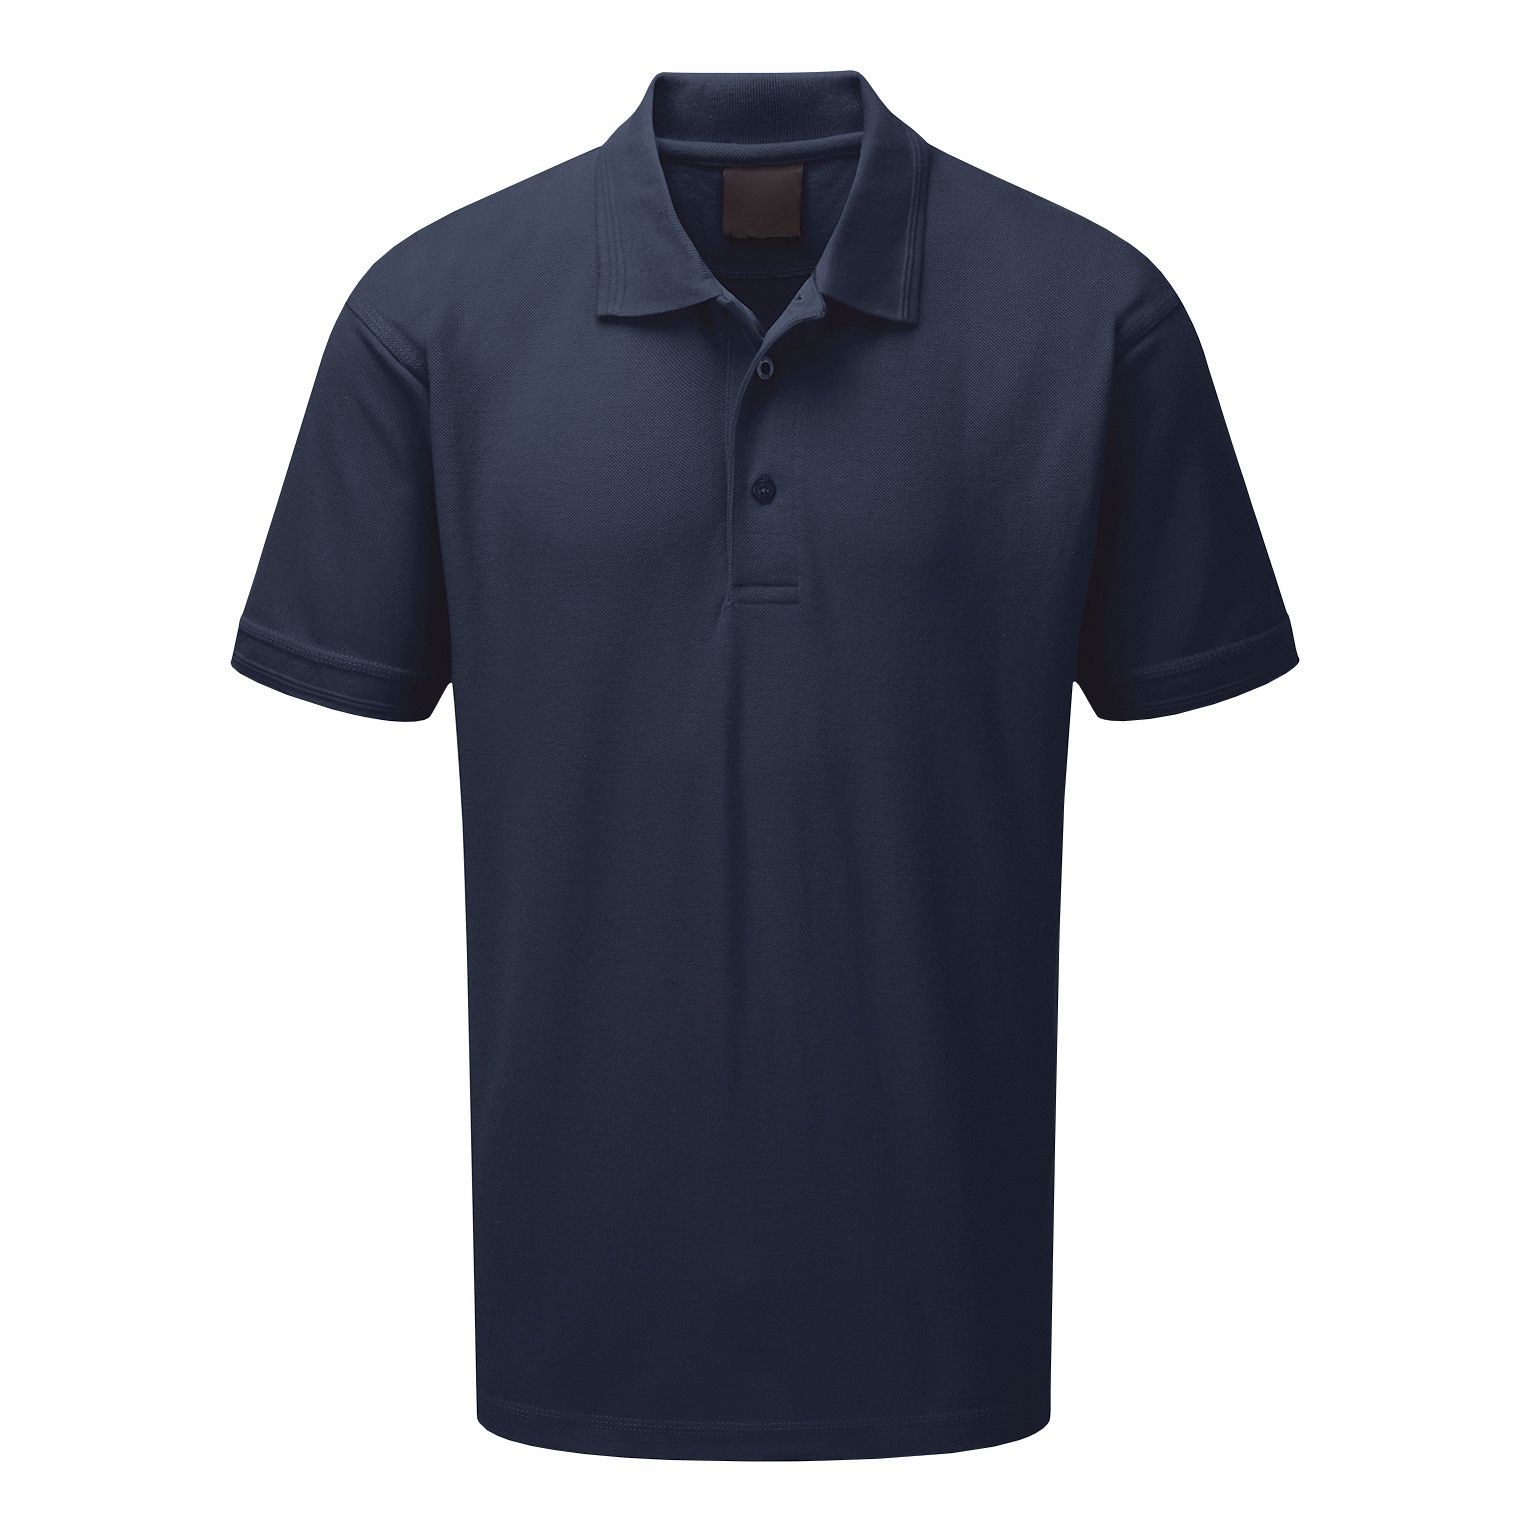 Premium Polo Shirt Triple Button 220gsm Polycotton XXXXLarge Navy Ref CLPKSN4XL Approx 3 Day Leadtime